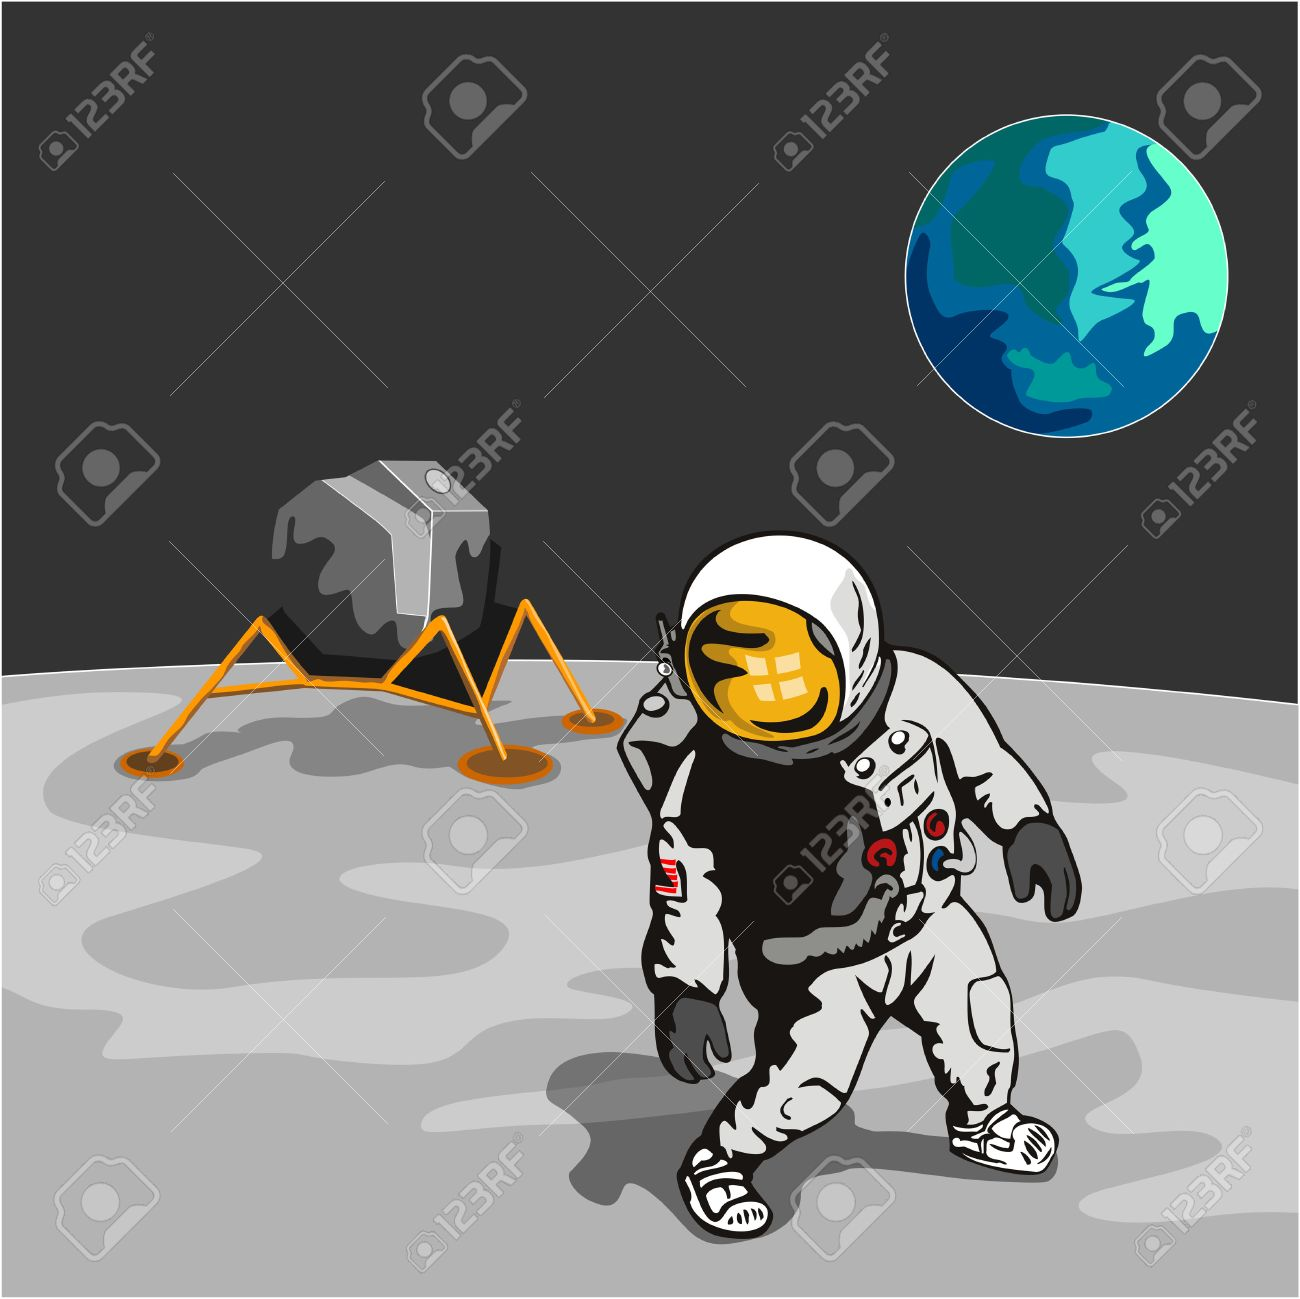 Astronaut walking on the moon with lunar module Stock Vector - 1455465